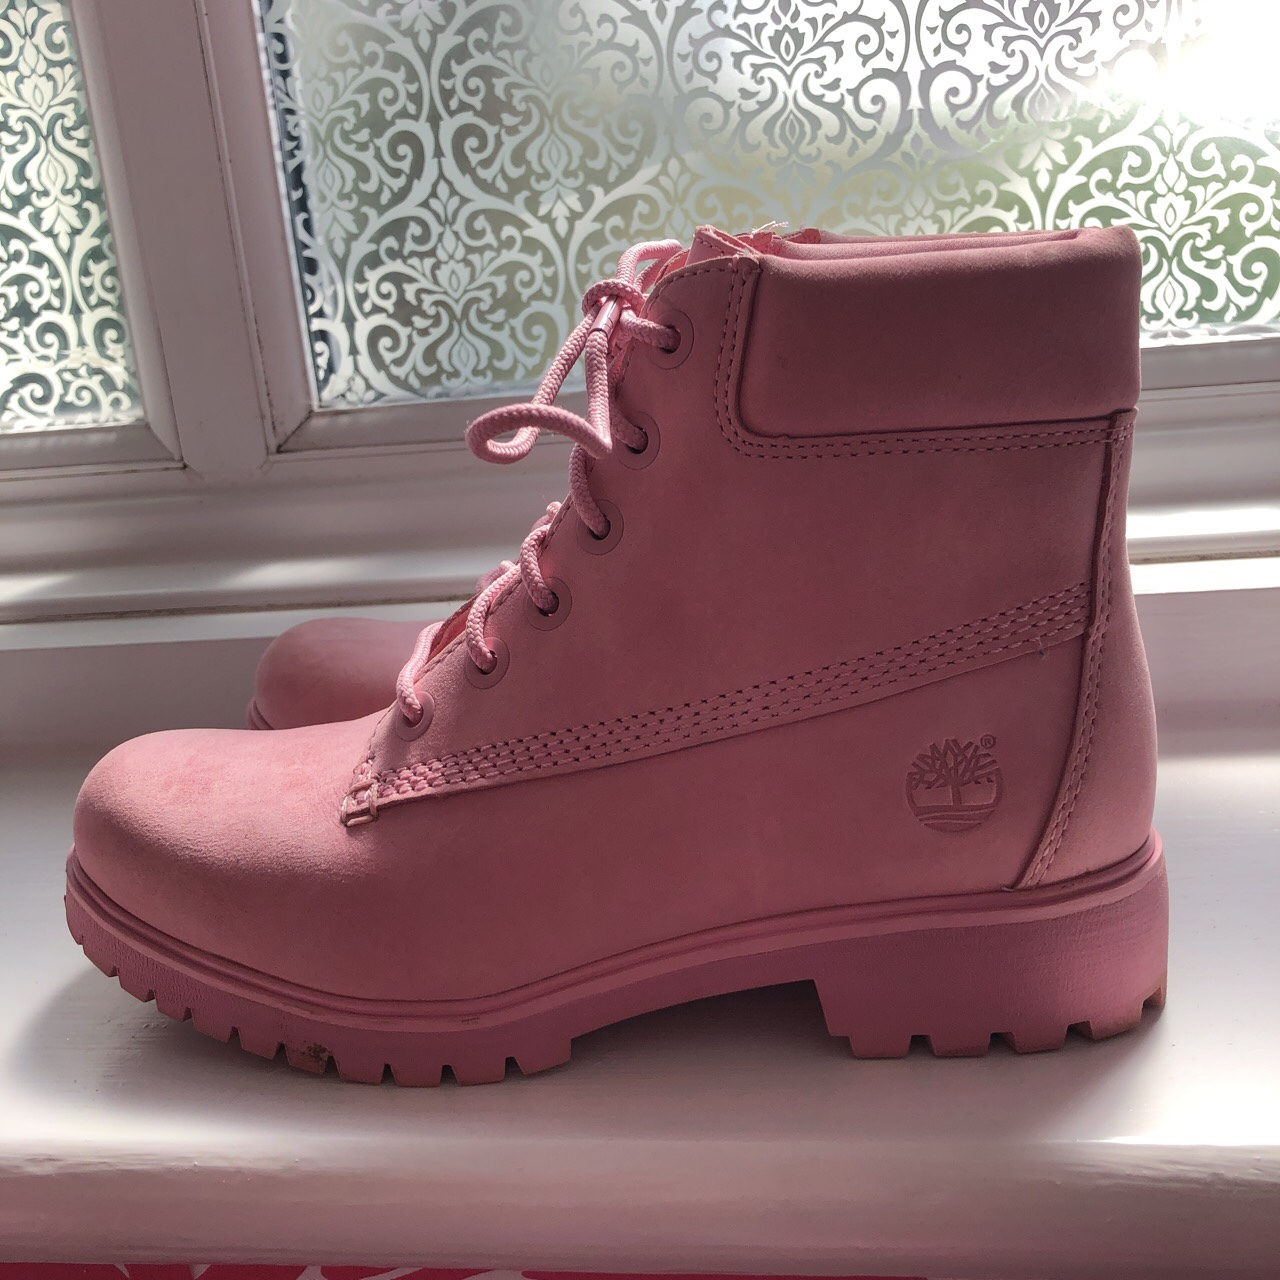 Baby pink suede timberland boots worn